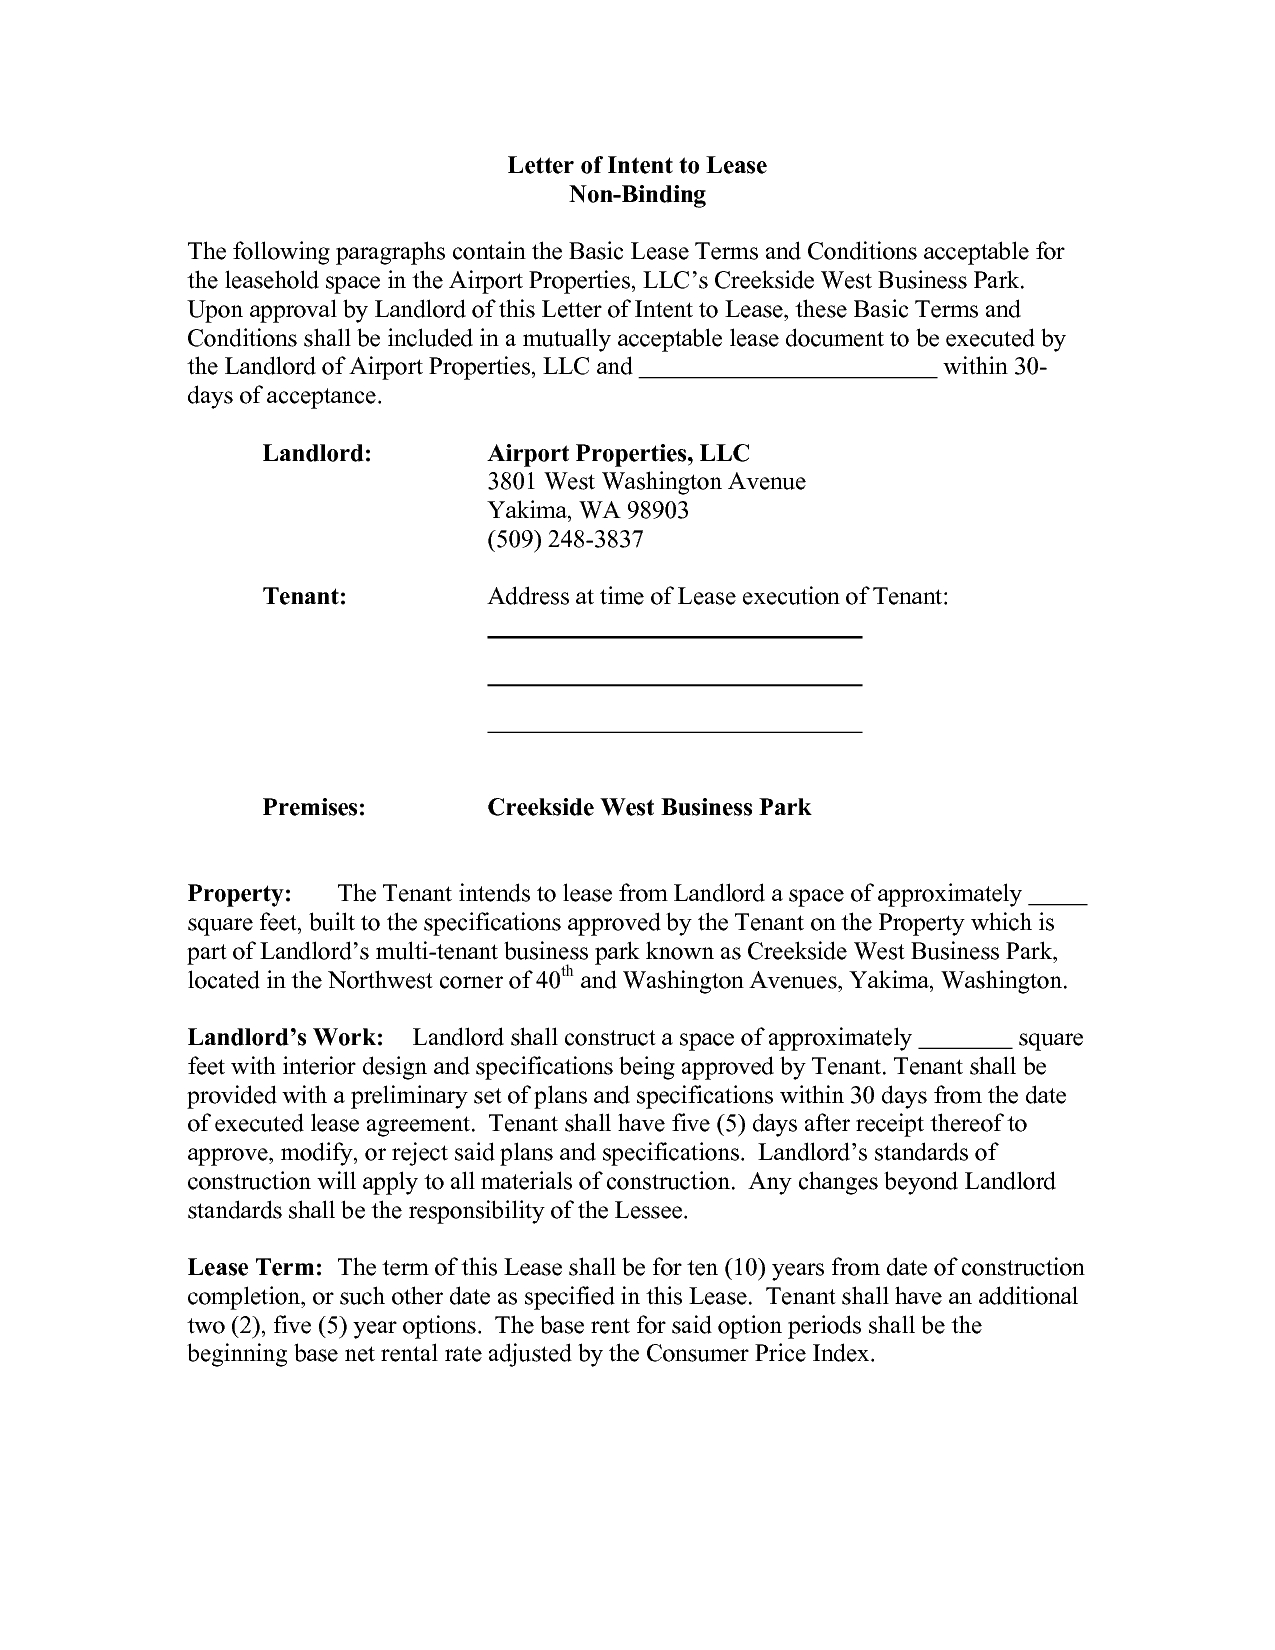 Letter Of Intent to Lease Commercial Space Template - Letter Intent Real Estate Lease Hd Best Ideas Sample Nice